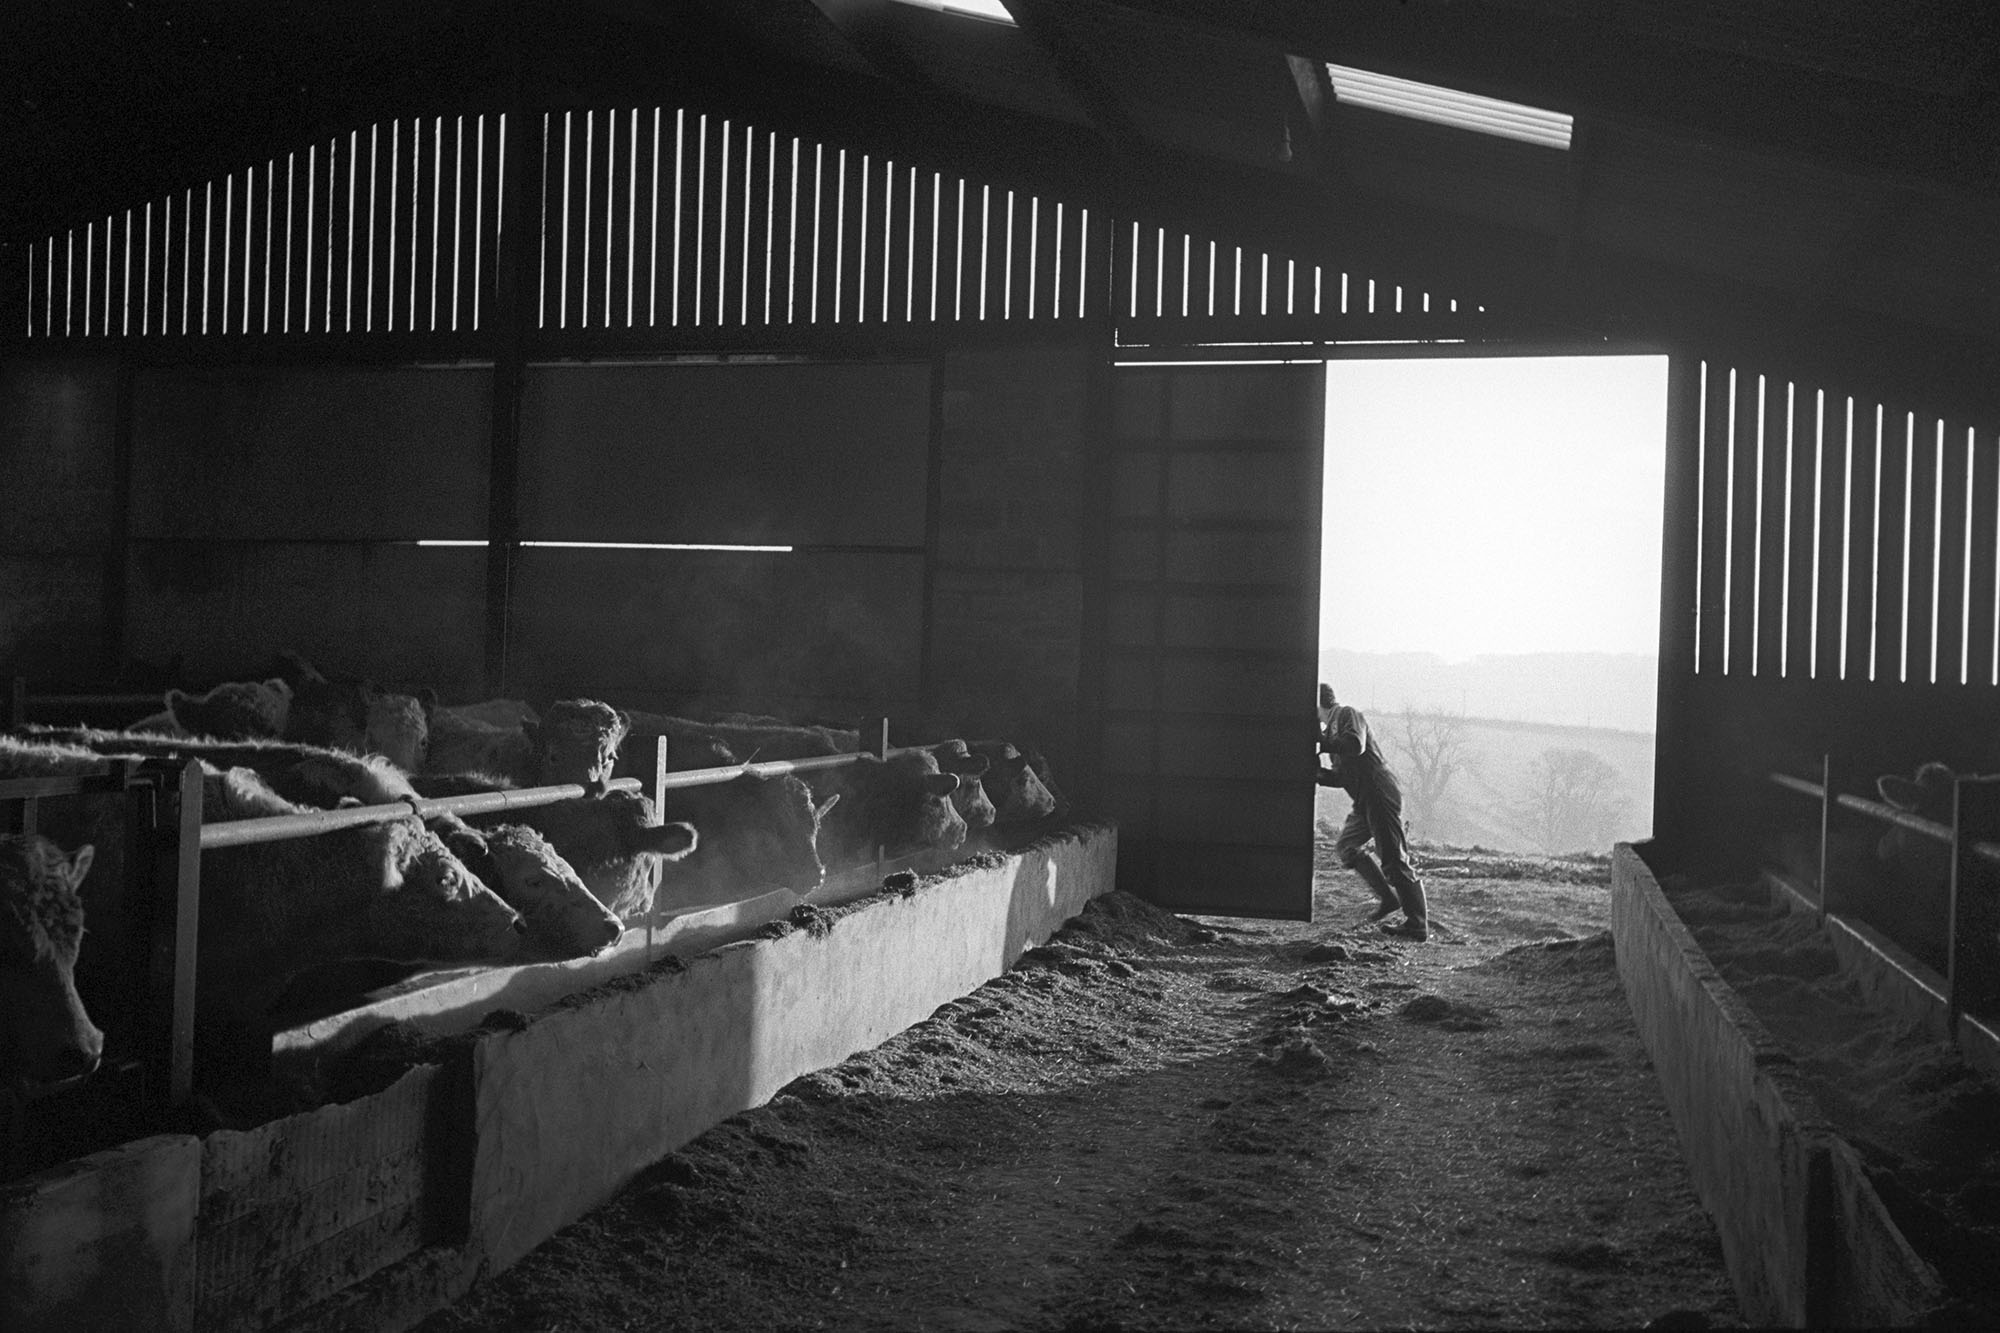 Store cattle, Parsonage Farm, Chulmleigh, 1989